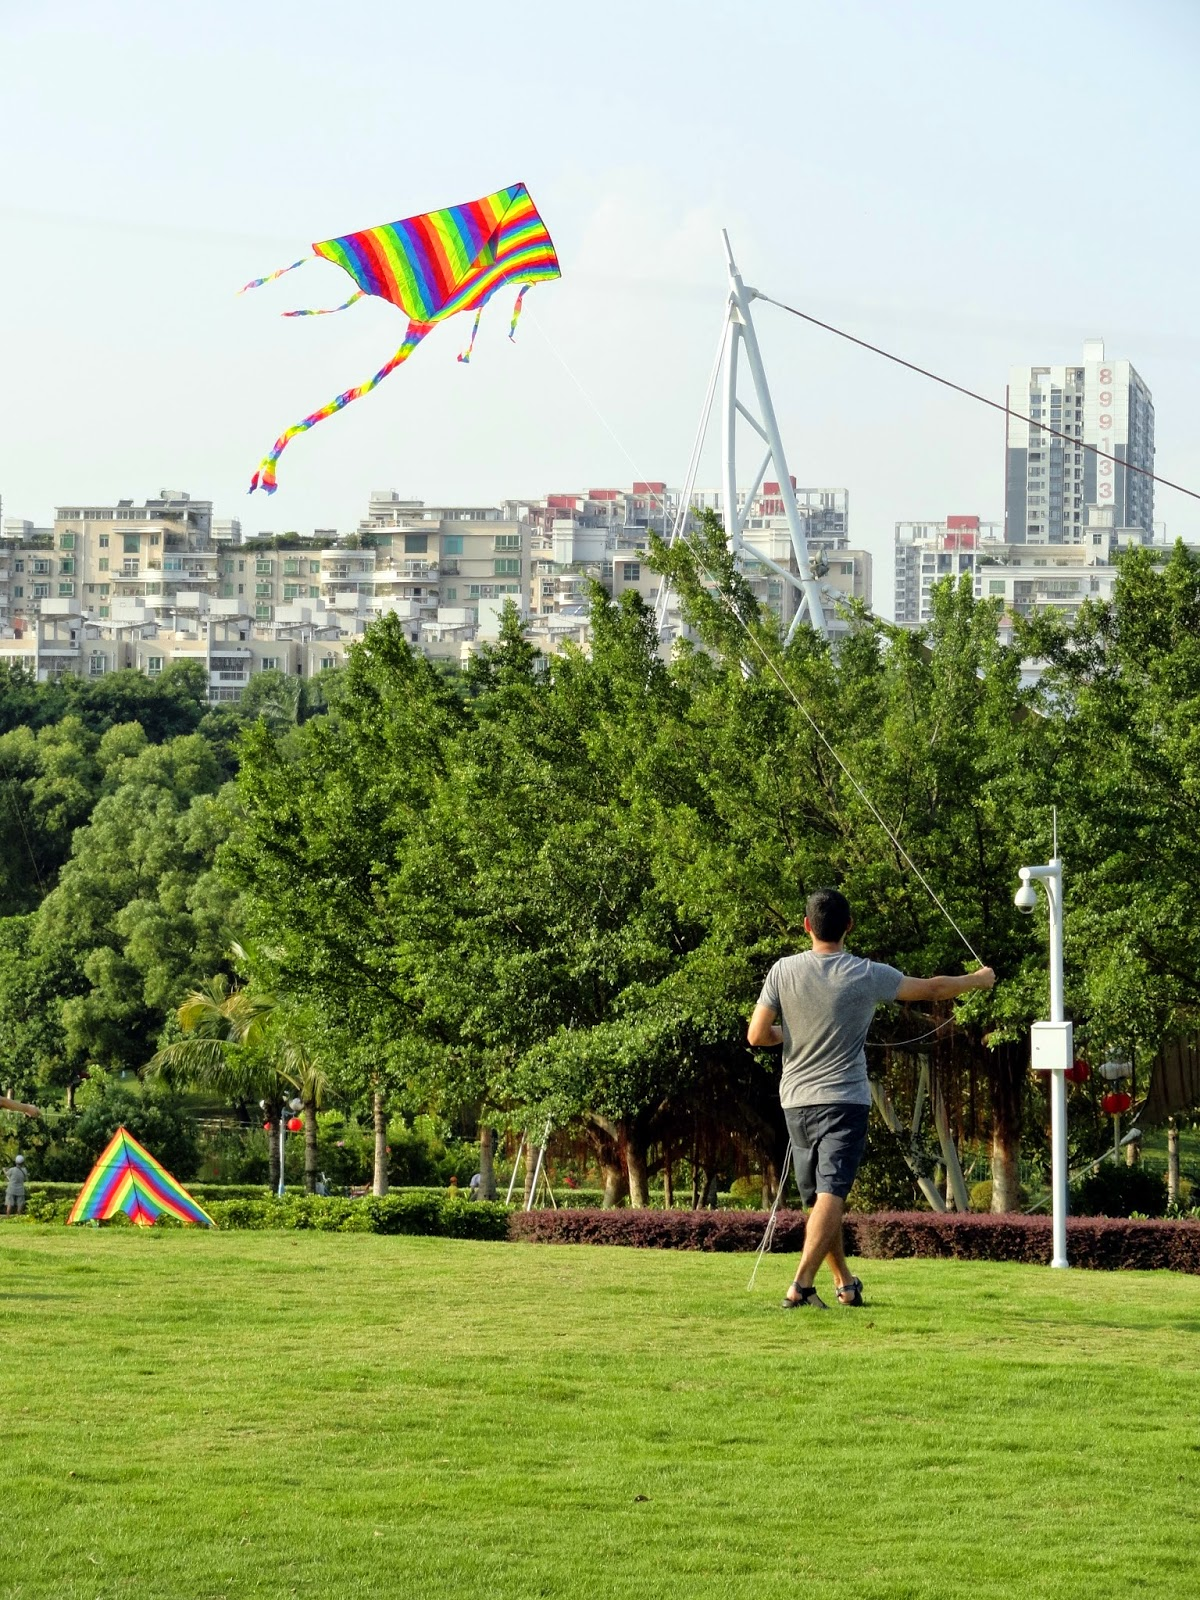 Flying Kites in China